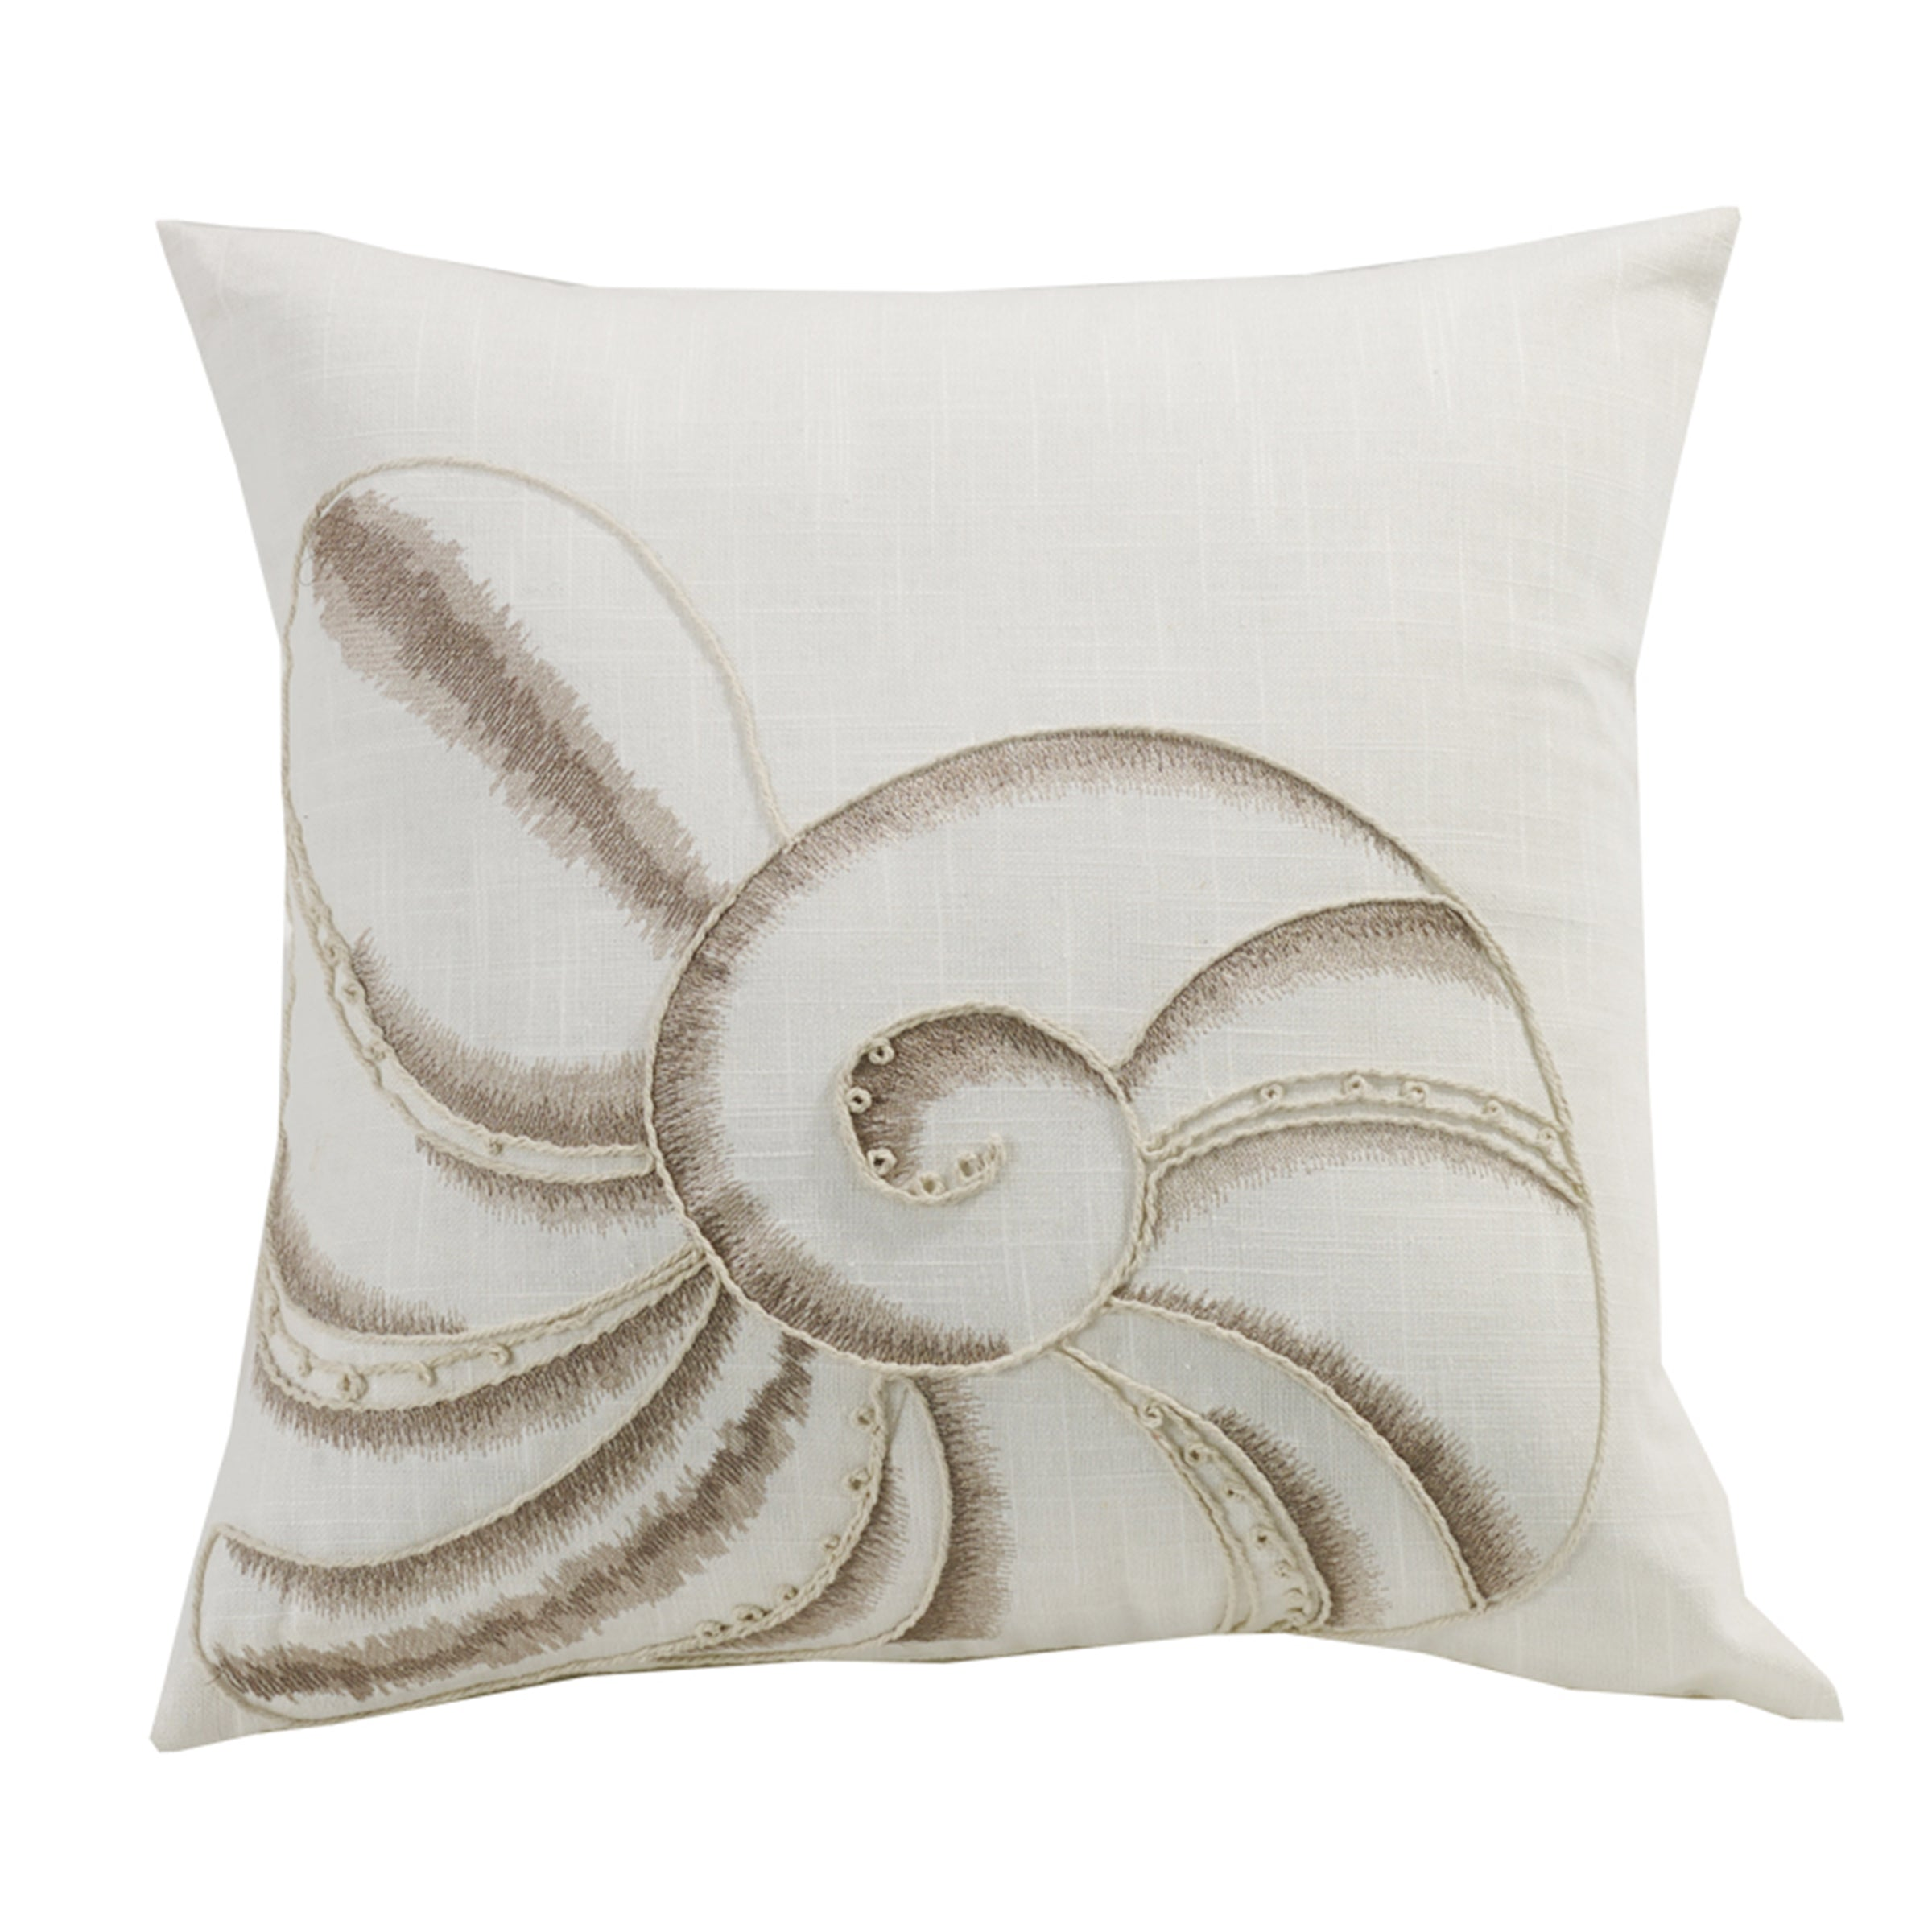 FB5400P5  Newport Seashell Embroidery Pillow